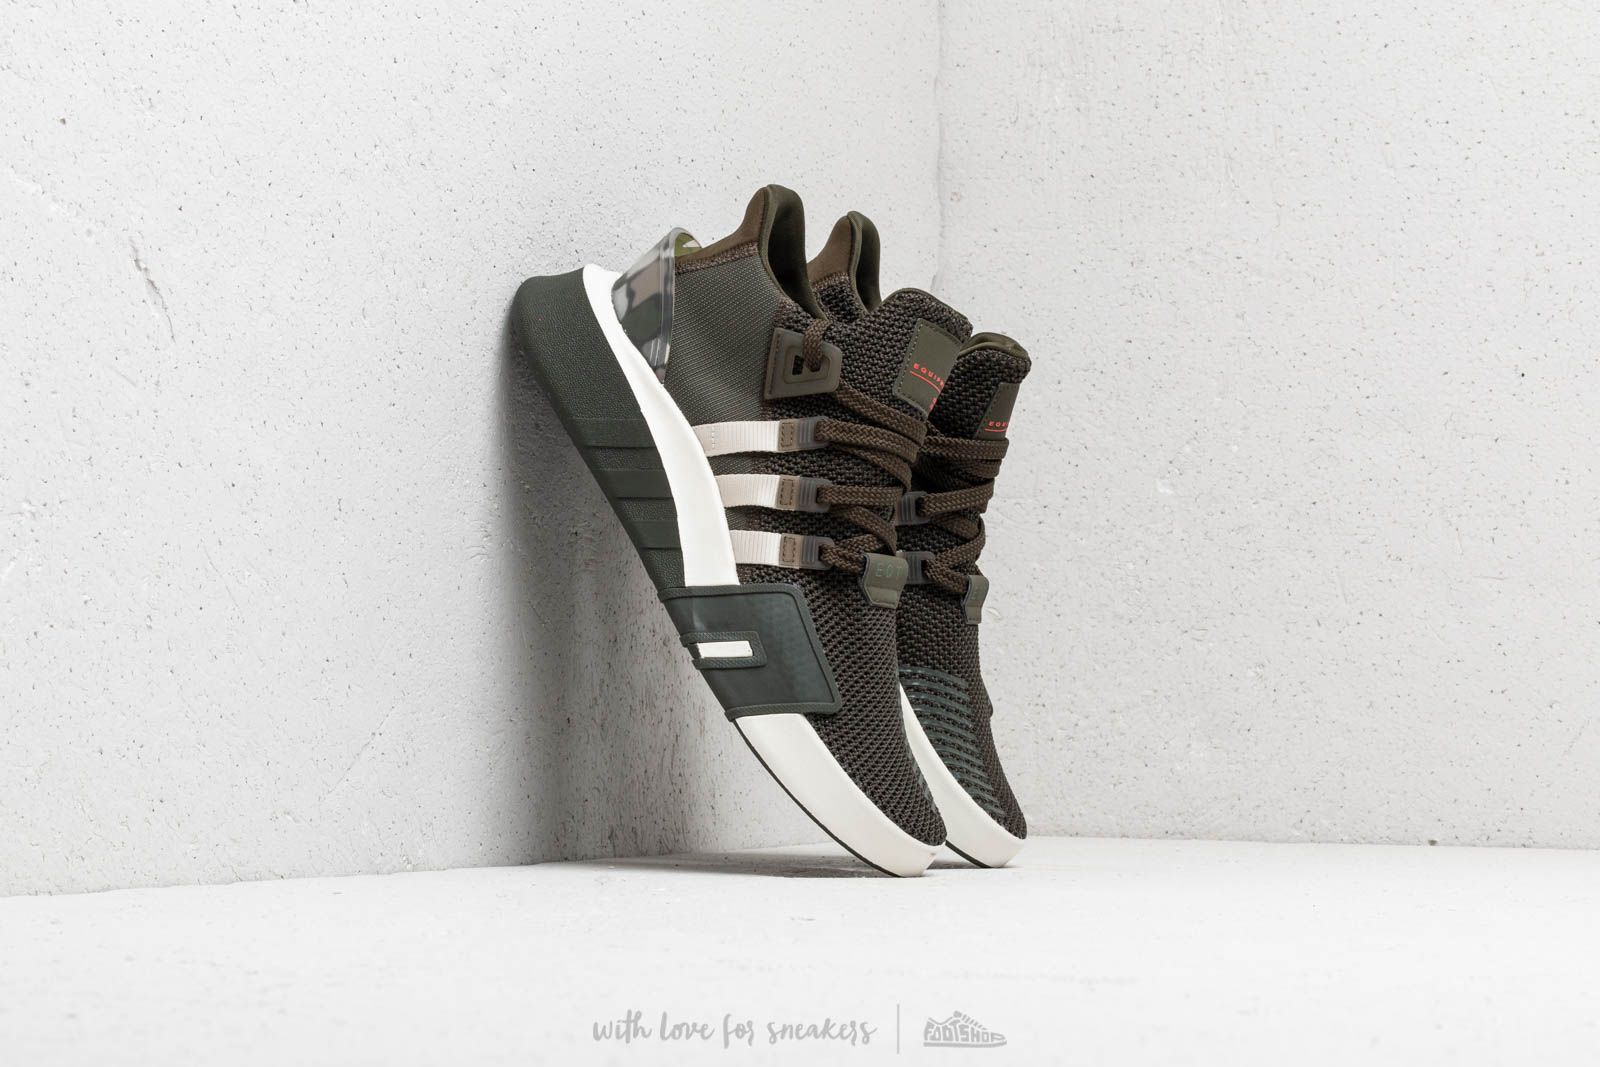 735679c1134bf4 adidas EQT Bask ADV Night Cargo  Chalk White  Talc at a great price 110